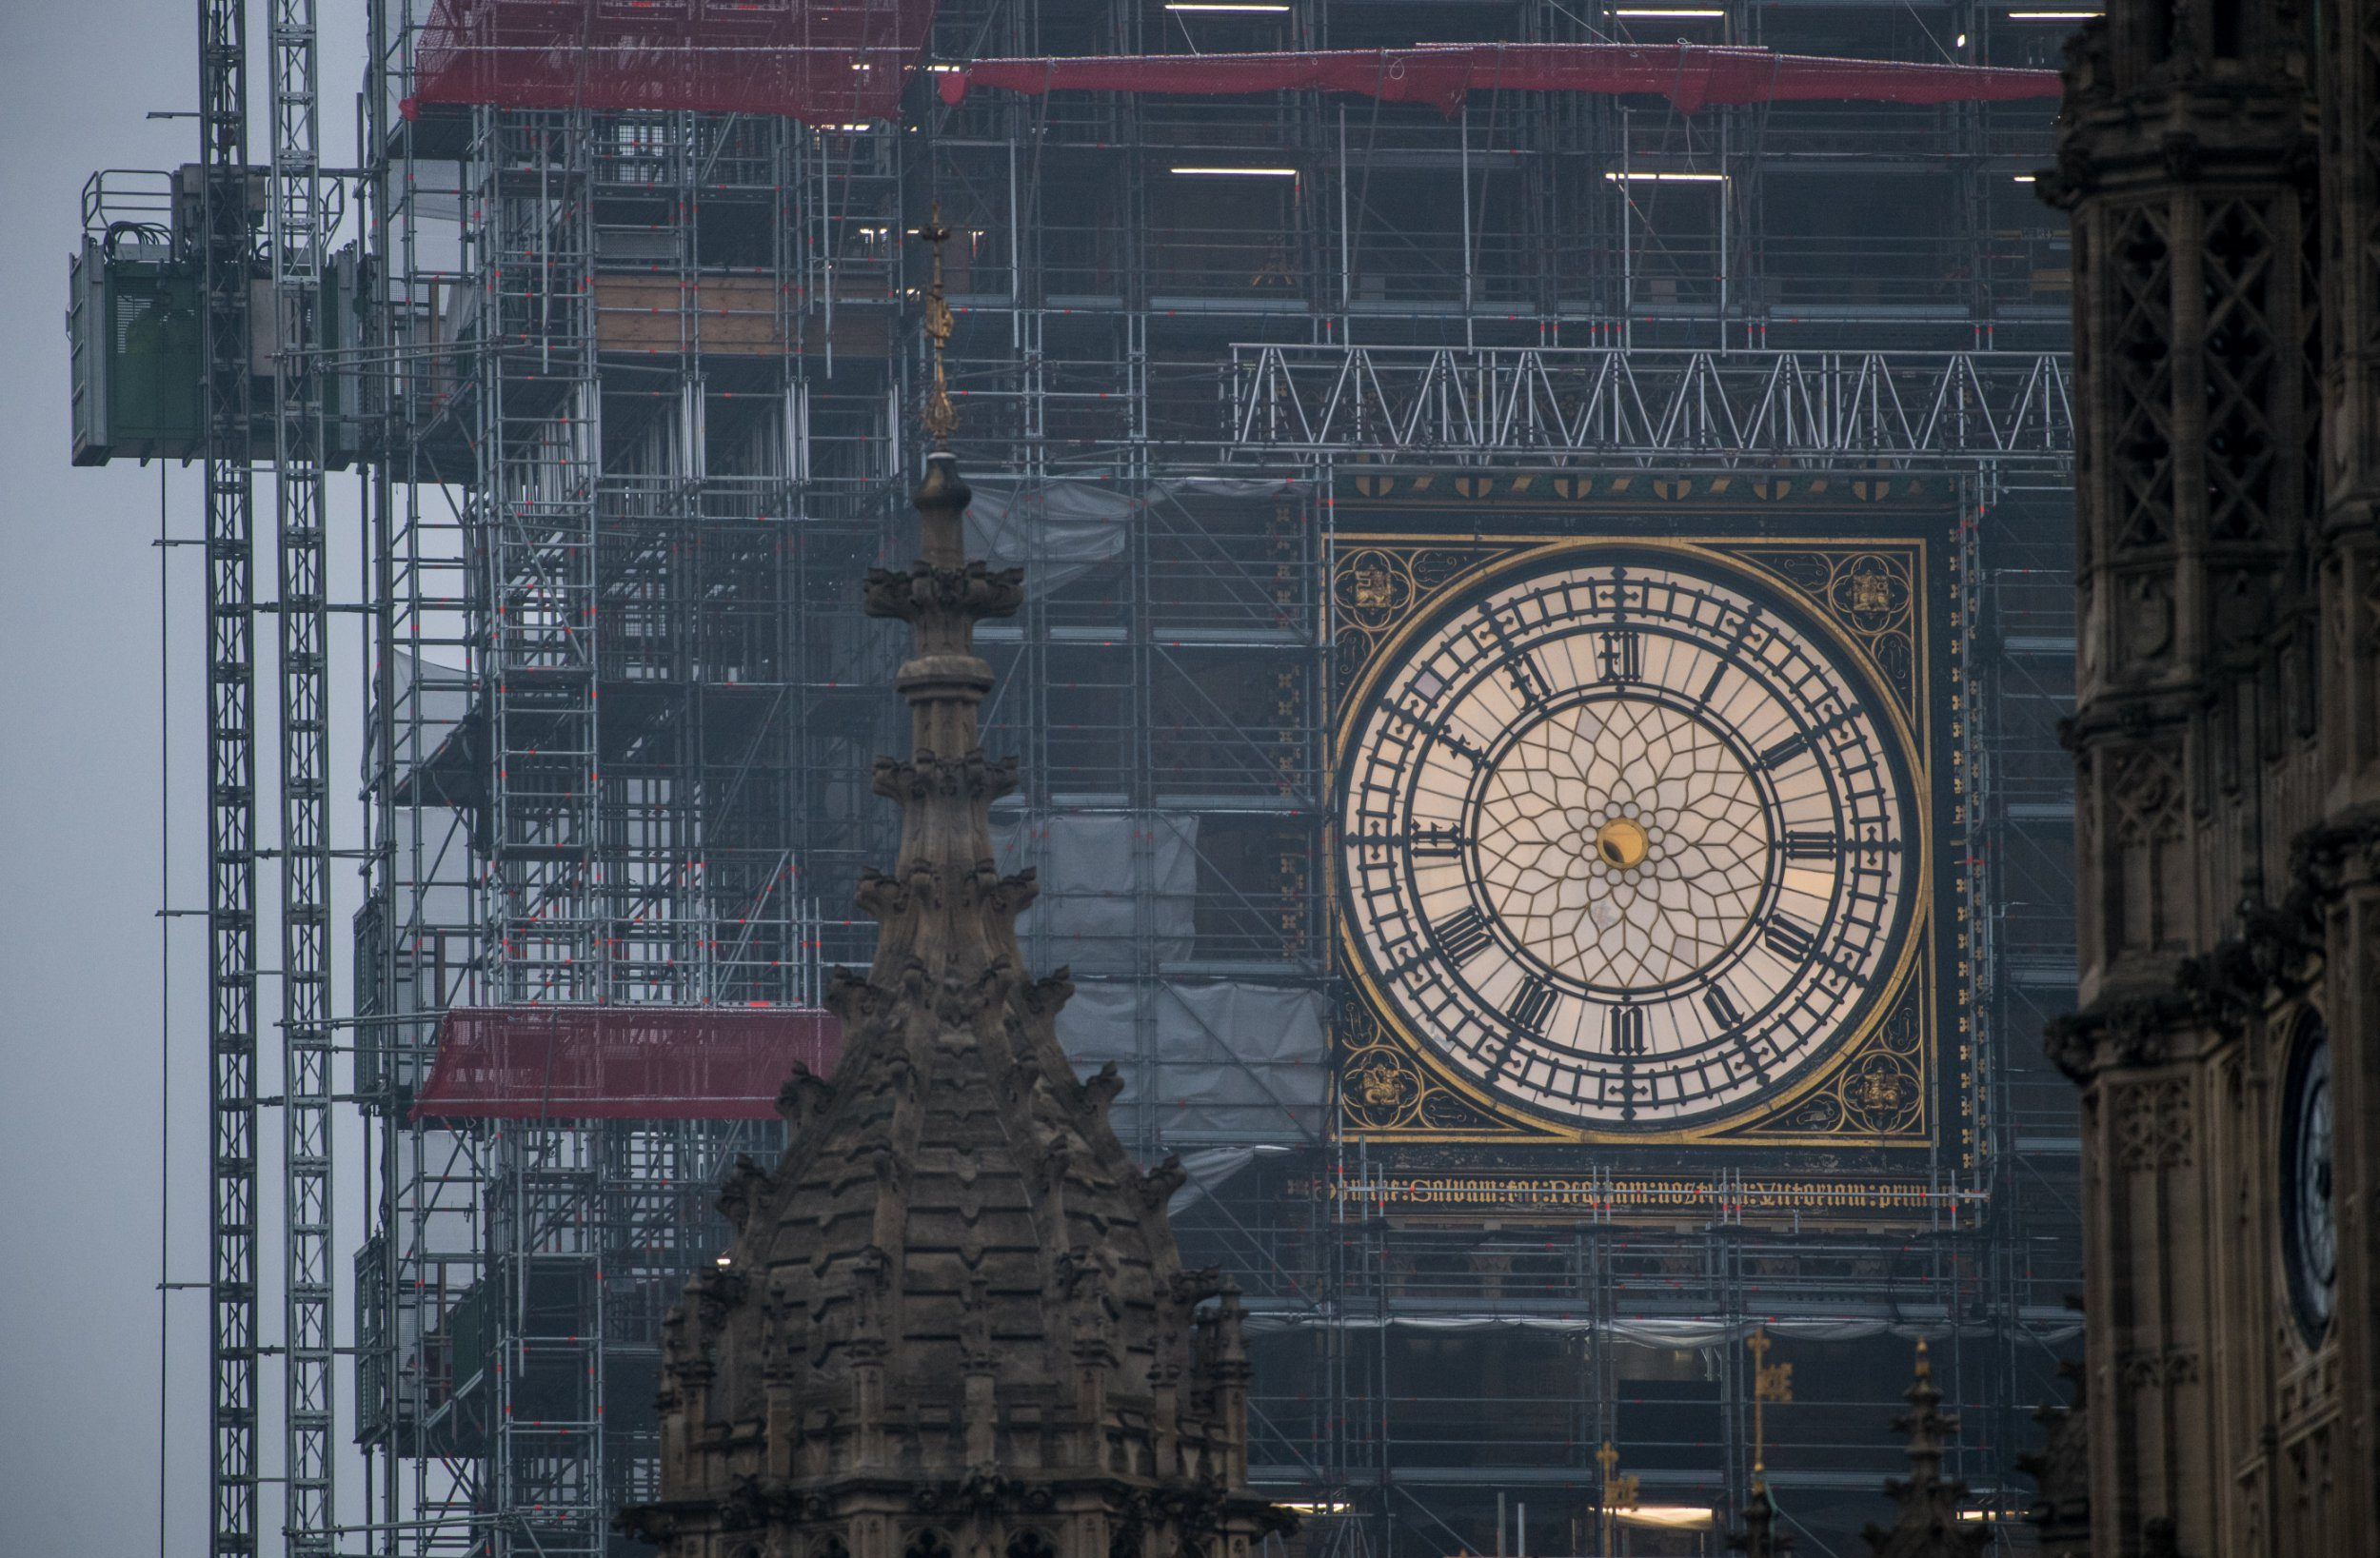 LONDON, ENGLAND - APRIL 12: A clock face on Elizabeth Tower, commonly known as Big Ben, is seen without its hour and minute hands as conservation work continues on the Houses of Parliament on April 12, 2018 in London, England. An estimated total of ??61 million is being spent on the conservation of Elizabeth Tower, works are expected to be completed by 2021. (Photo by Chris J Ratcliffe/Getty Images)